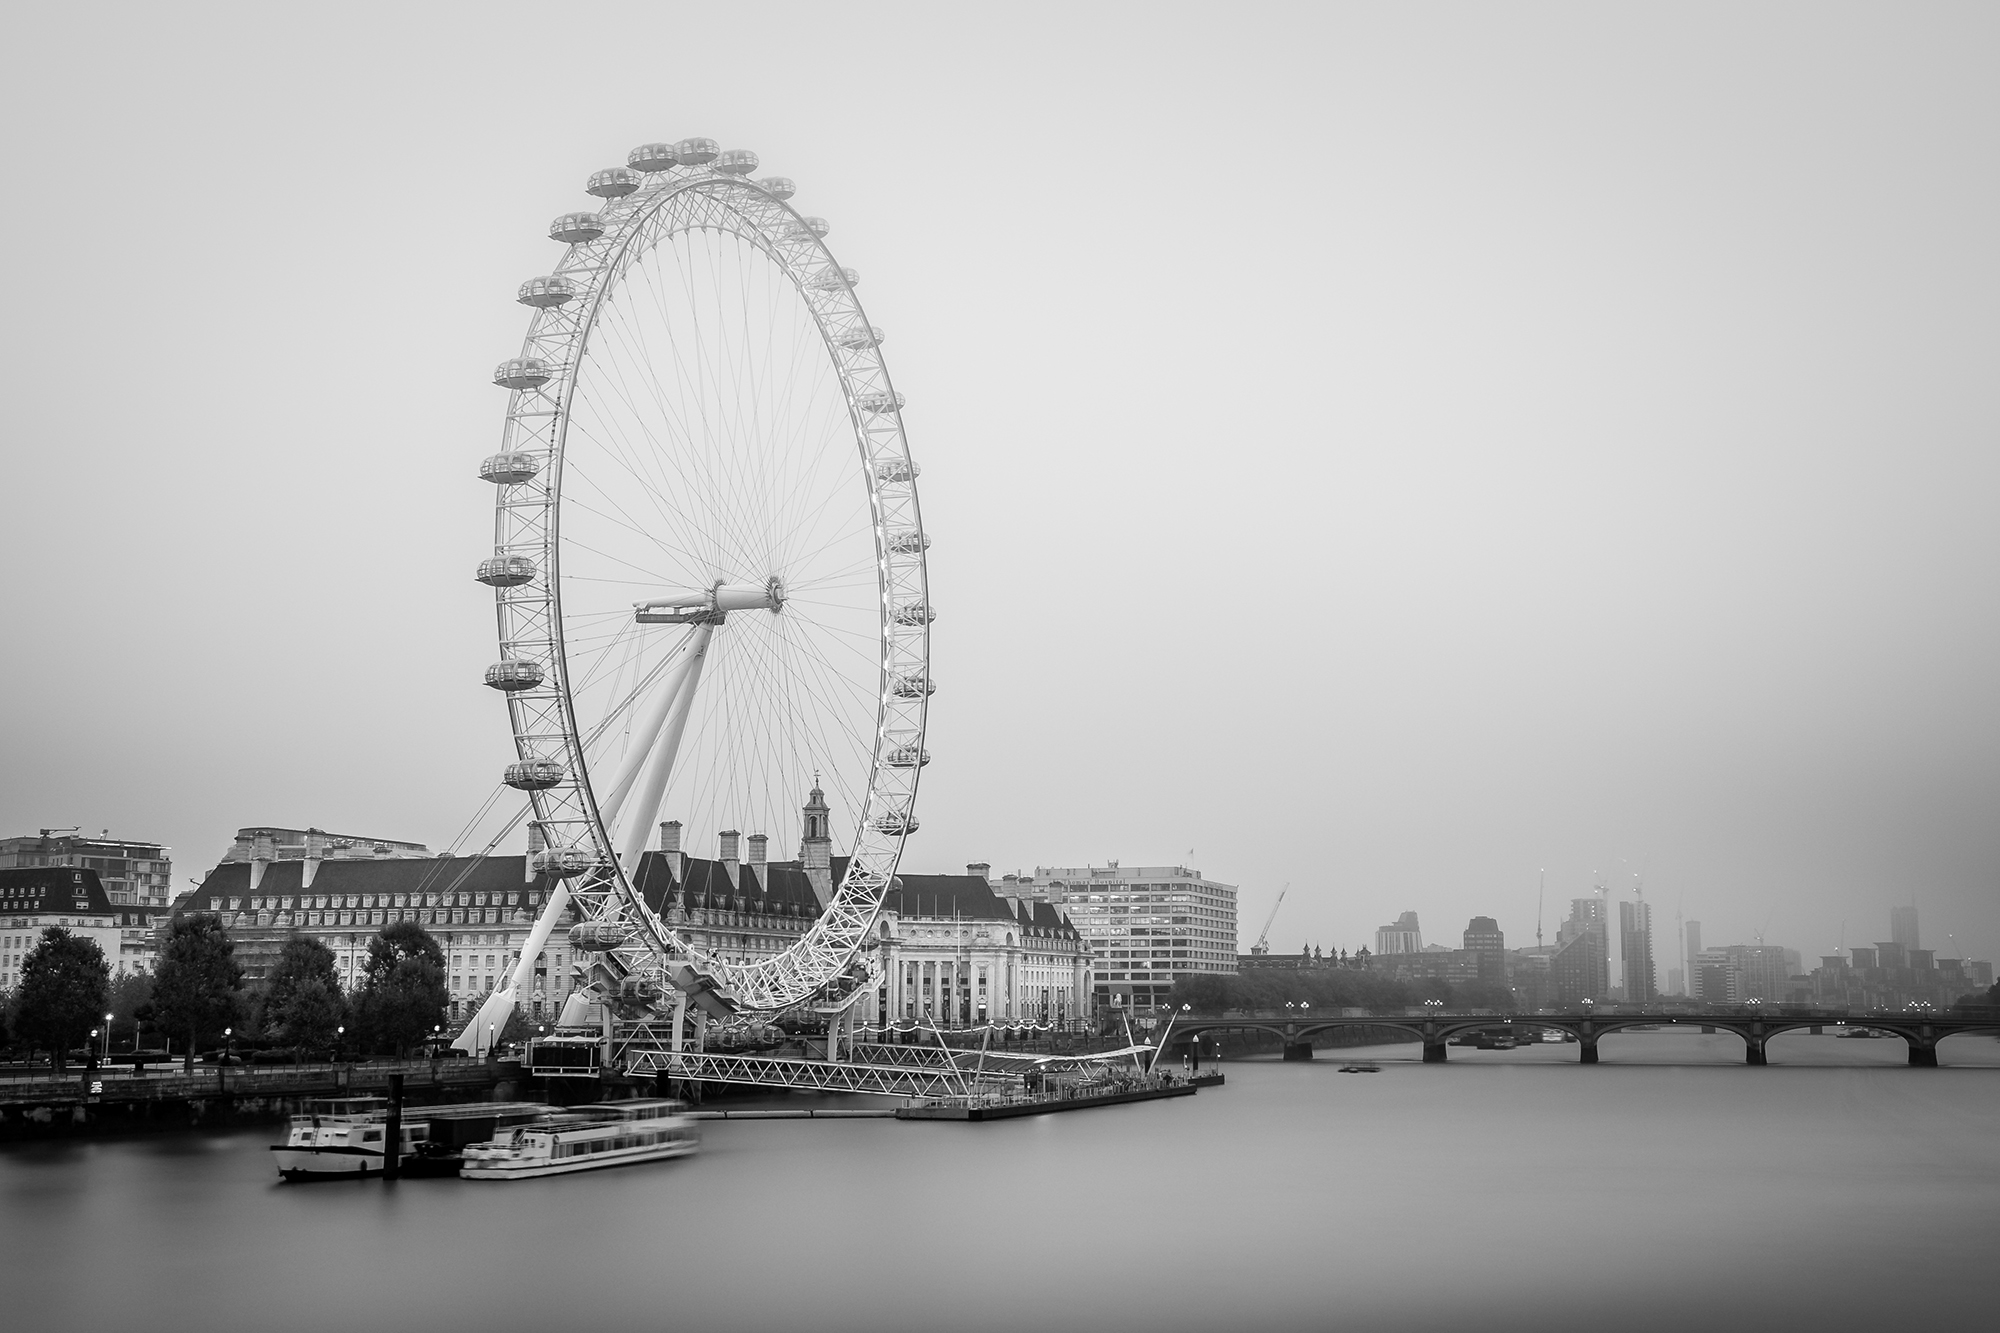 Black and White long exposure photo of the London Eye by Trevor Sherwin